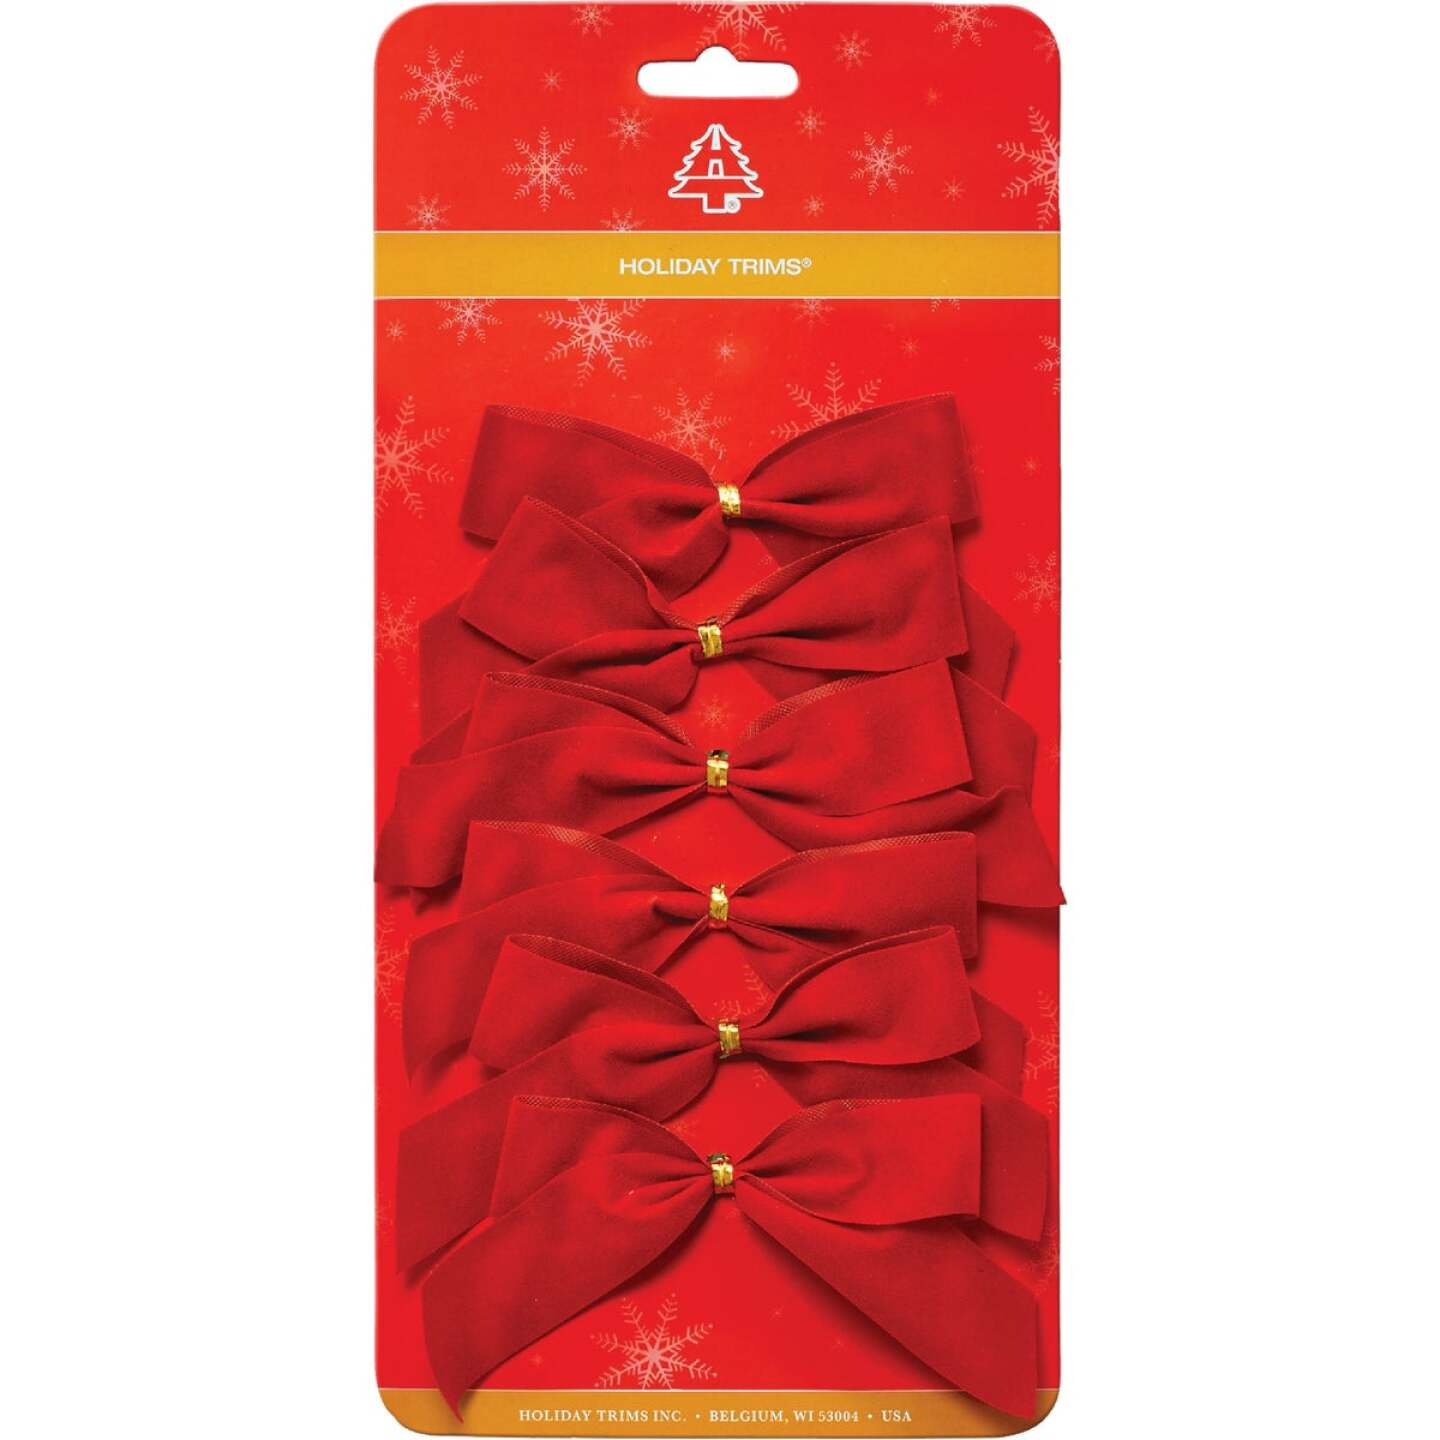 Holiday Trims 2-Loop 3-1/2 In. W. x 3-1/2 In. L. Red Velvet Christmas Bow (6-Pack) Image 1